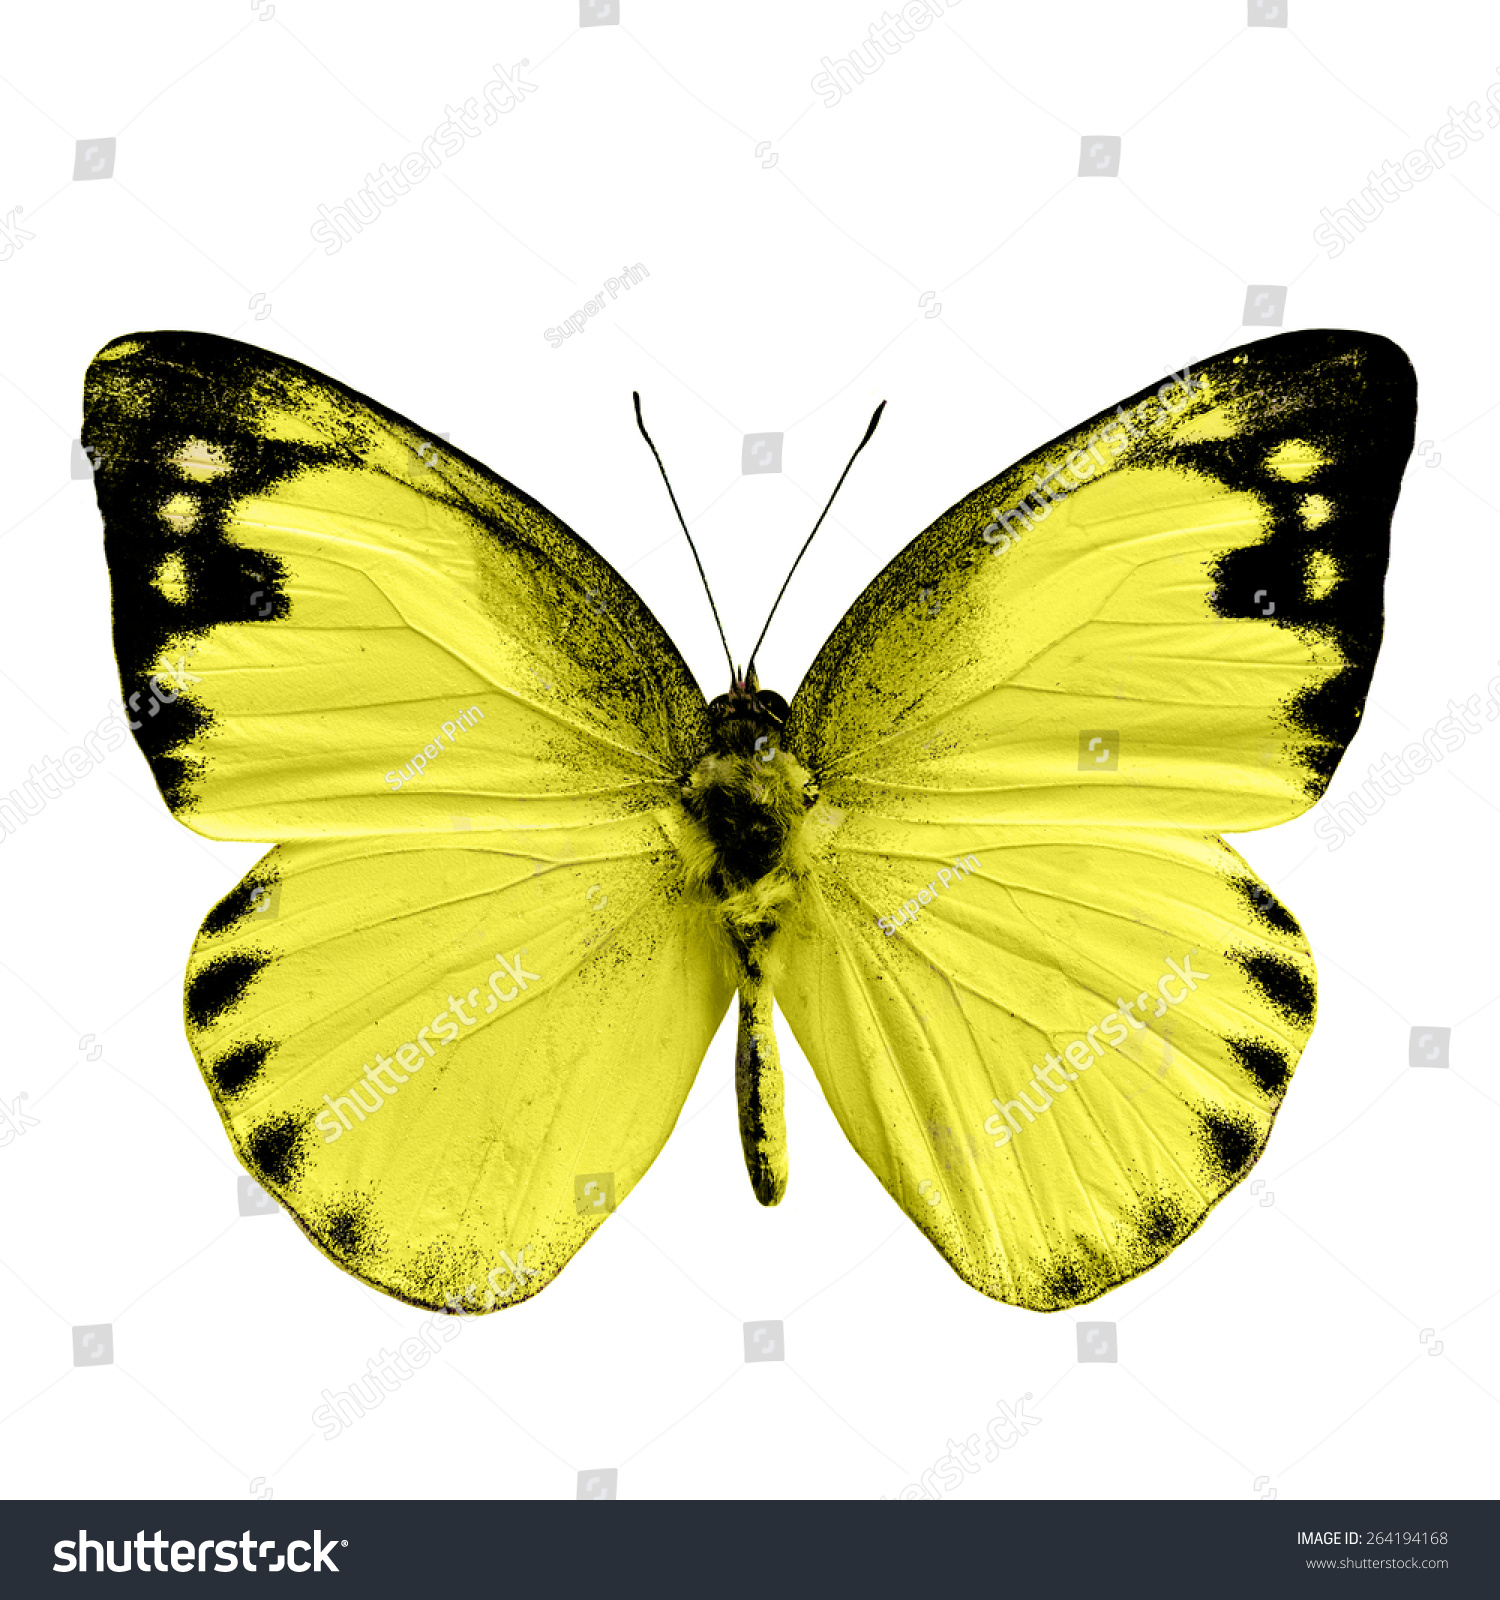 butterfly on yellow color - photo #13